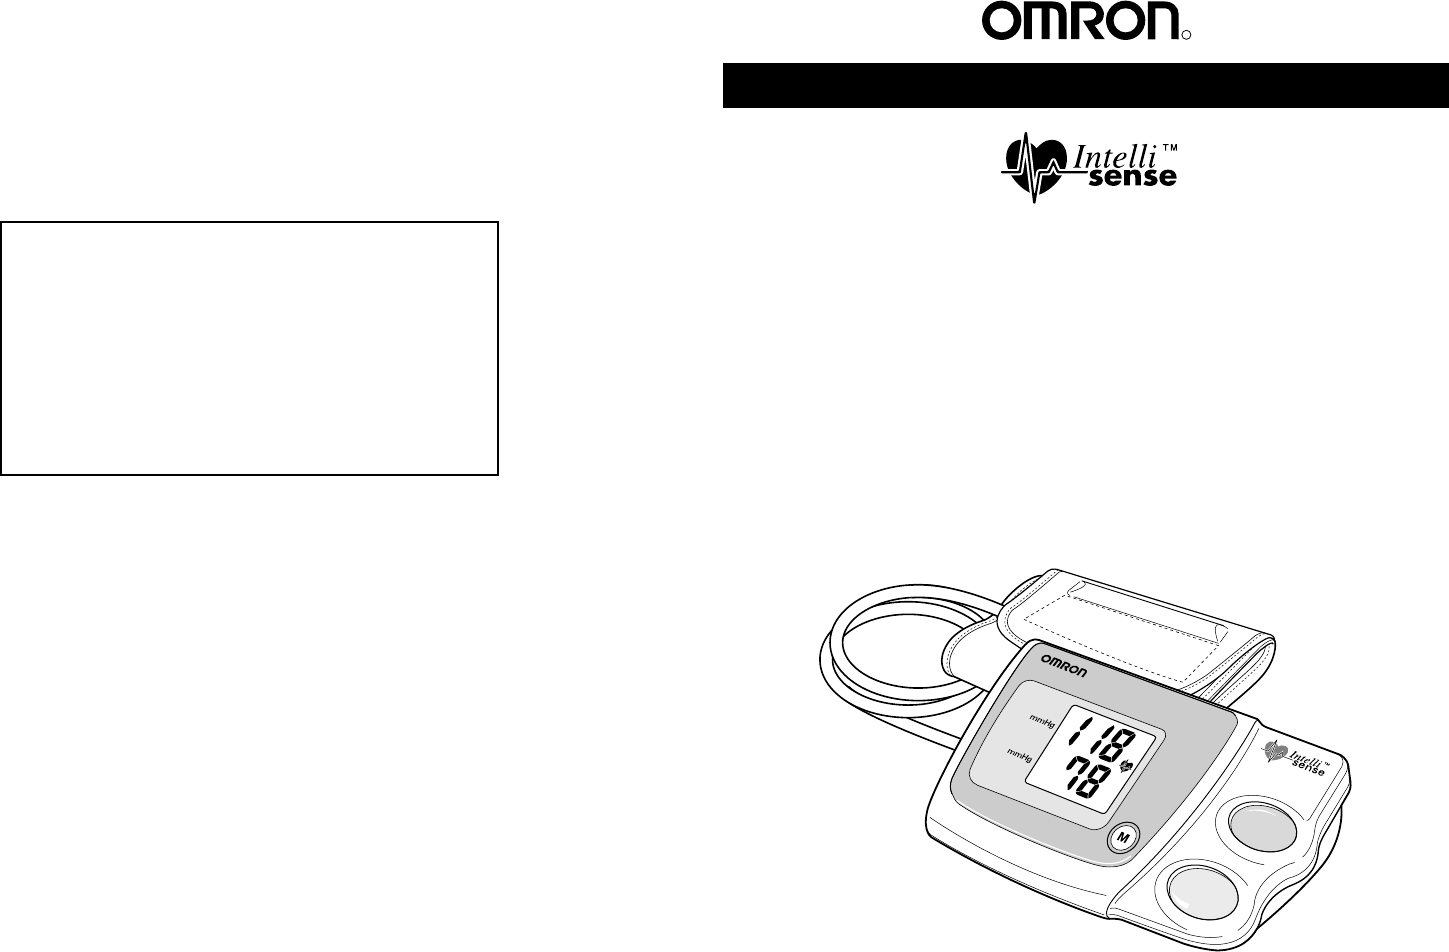 Omron Hem 7130 Instruction Manual